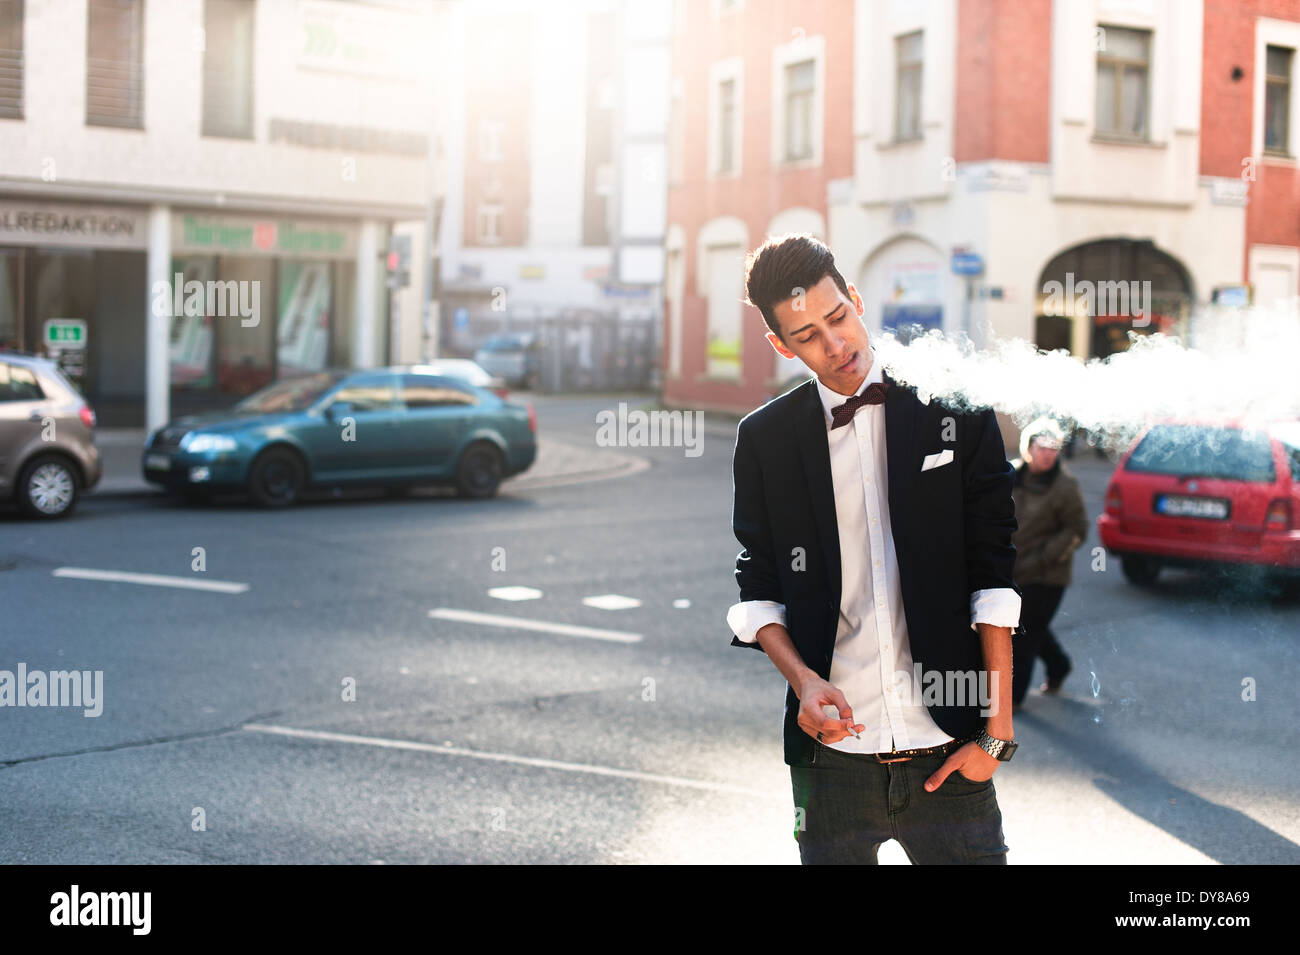 Smoking young man in the city - Stock Image